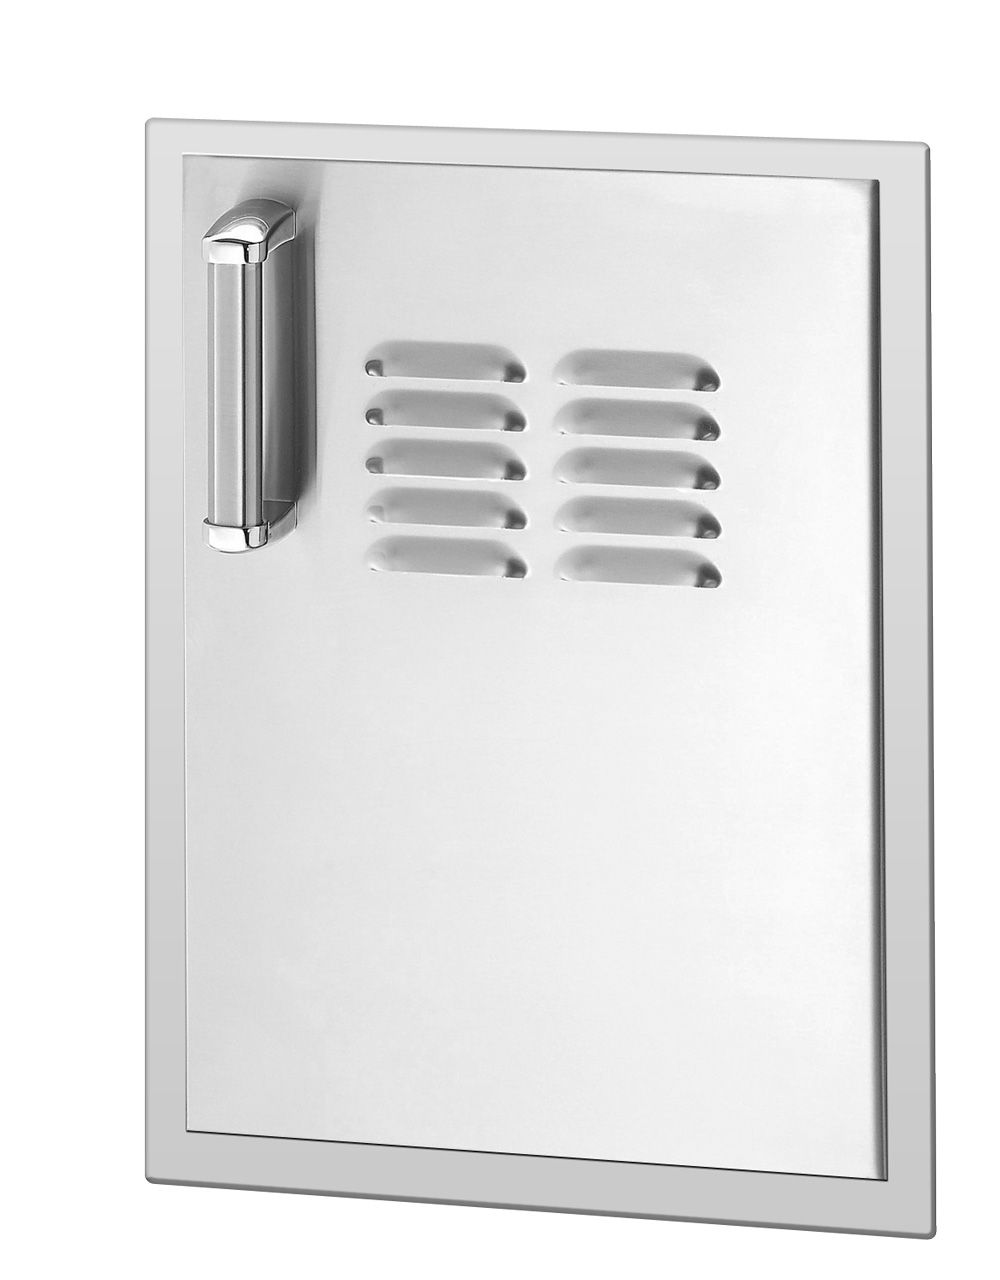 Fire Magic 20 X 14 Flush Mount Single Access Door With Tank Tray And Louvers Right Hinged 53820 Tsr 334 90 Firemagicstore Com W Magic Store Magic Fire